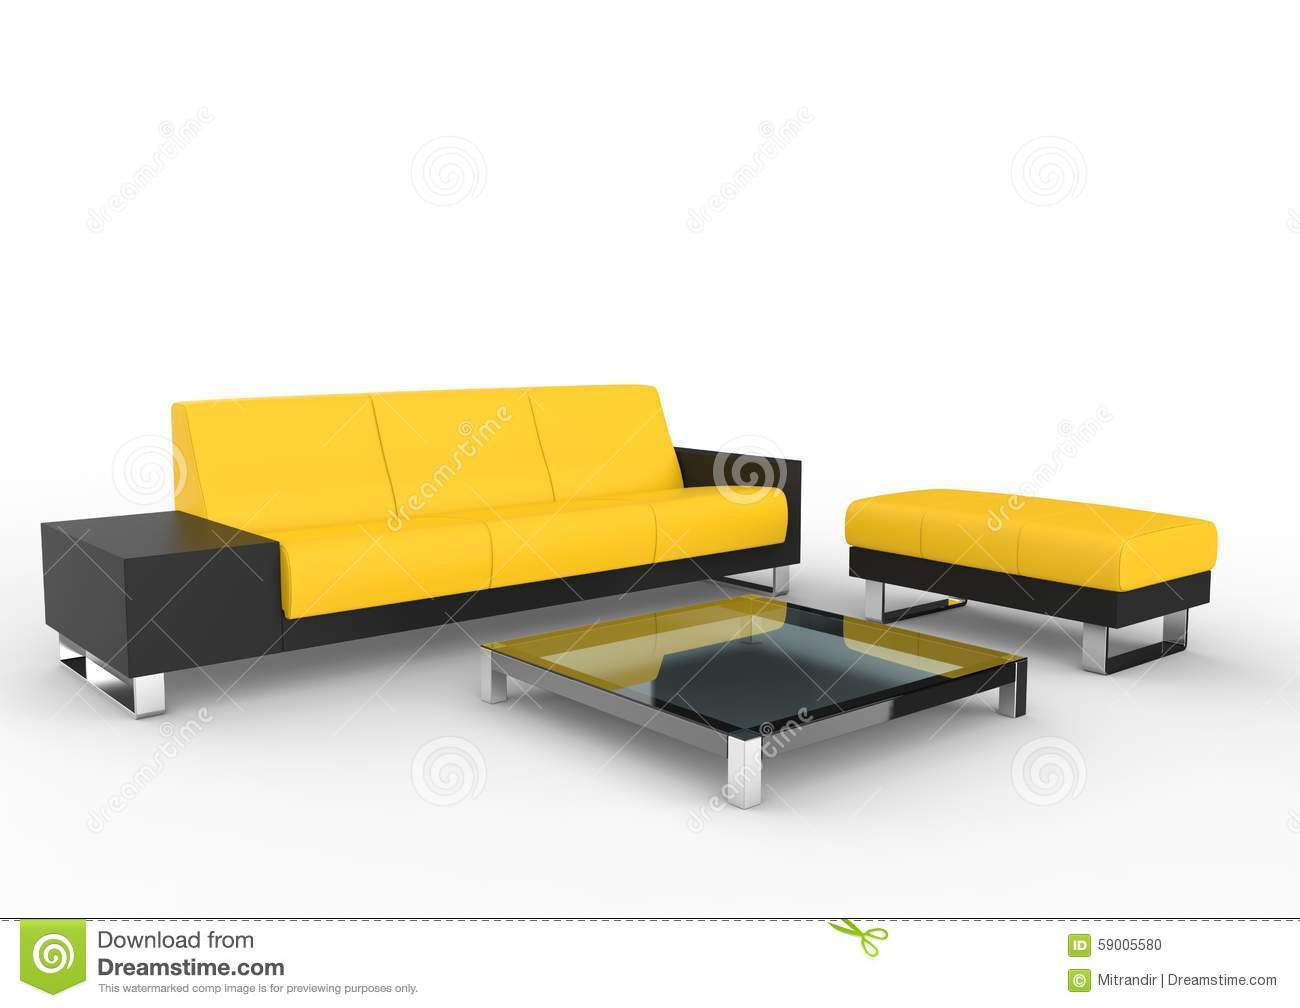 Black and yellow modern sofa and coffee table stock for Sofa table yellow